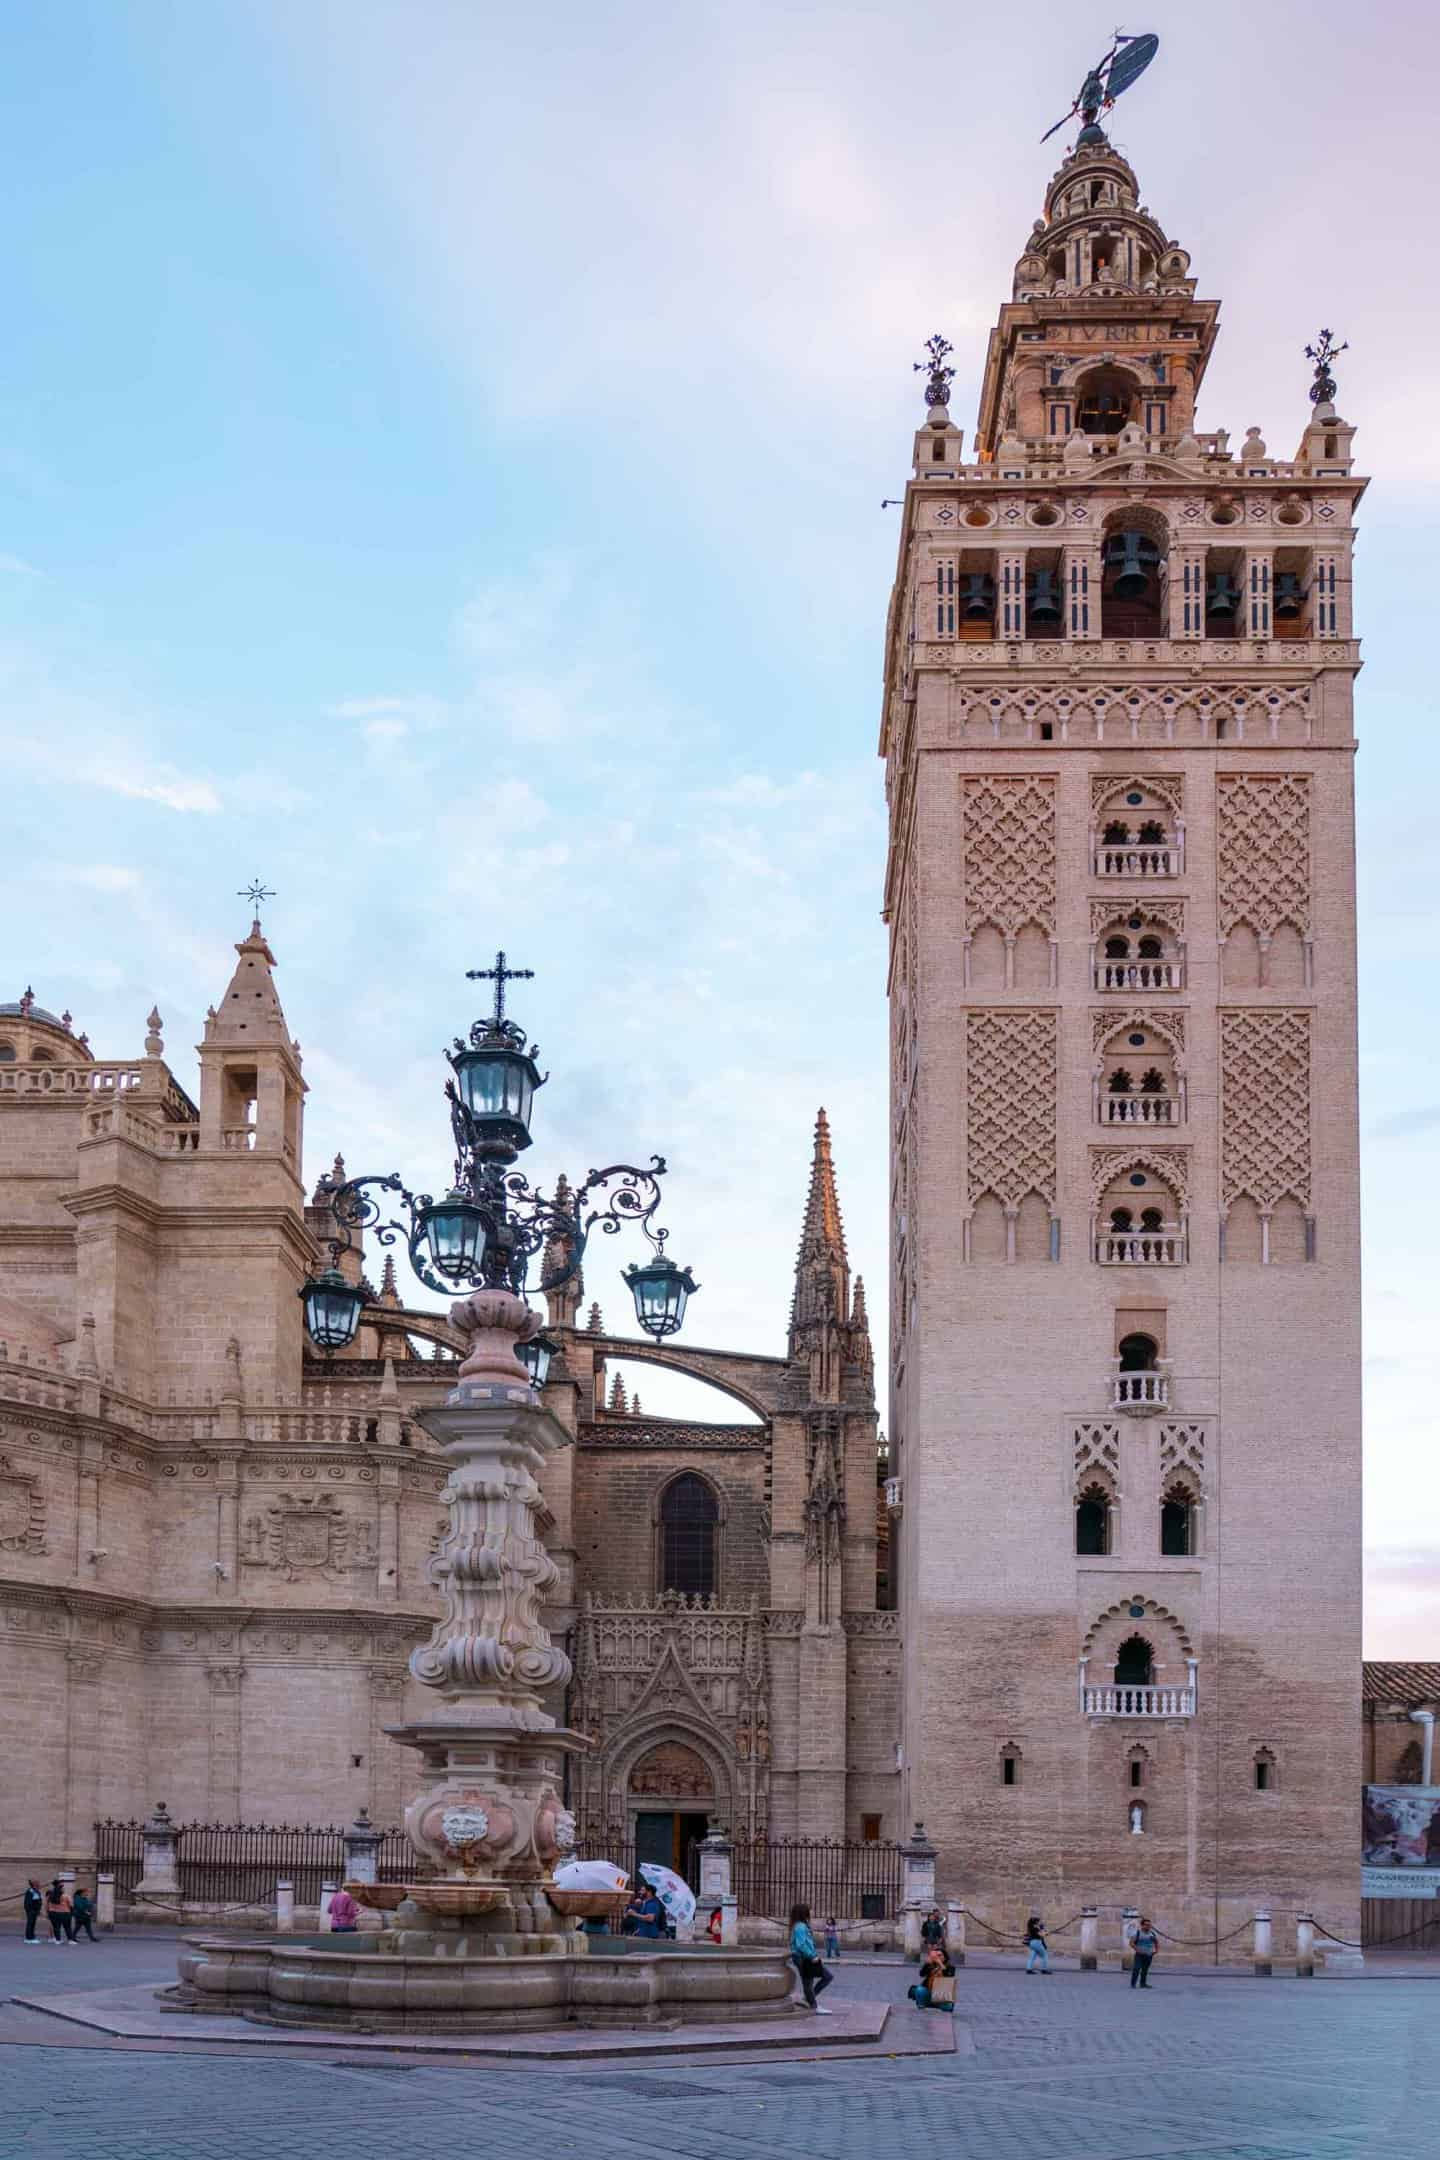 Catedral de Sevilla and La Giralda Bell Tower as seen from Plaza Virgen de los Reyes